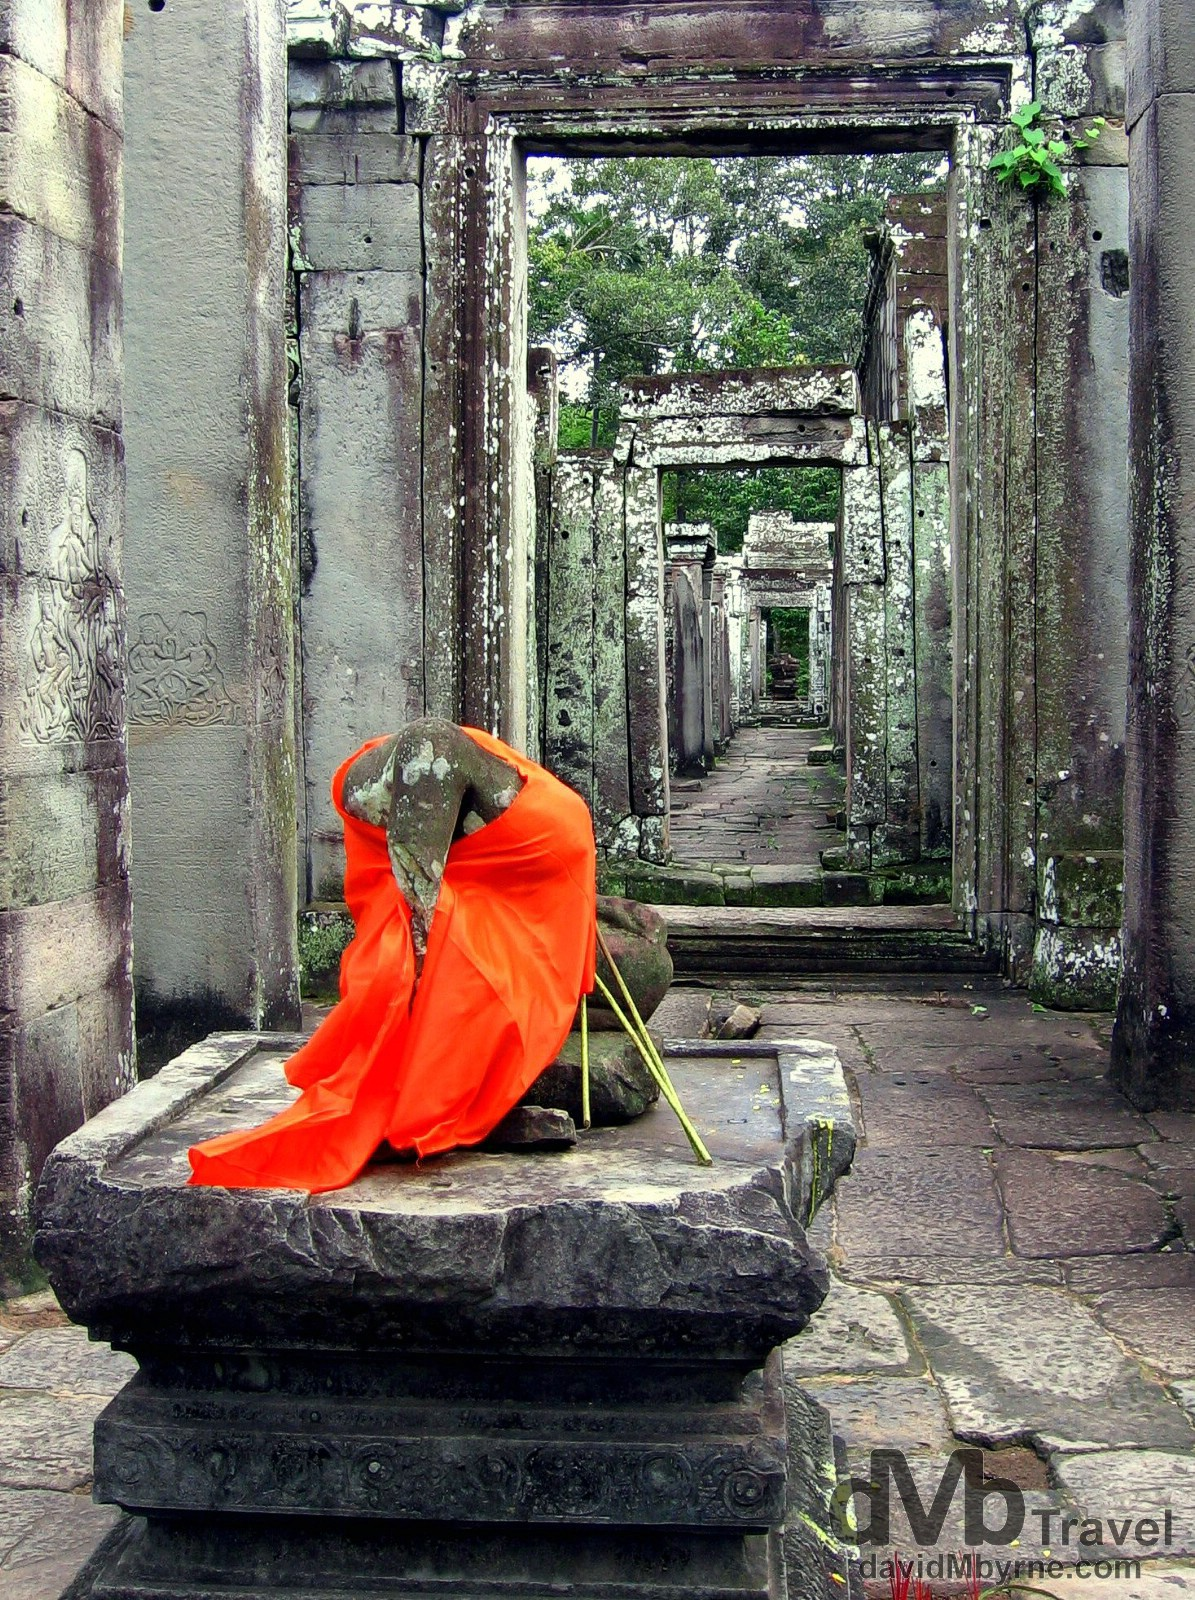 A headless Buddha in the ruins of the temples of Angkor, Cambodia. September 20th, 2005.